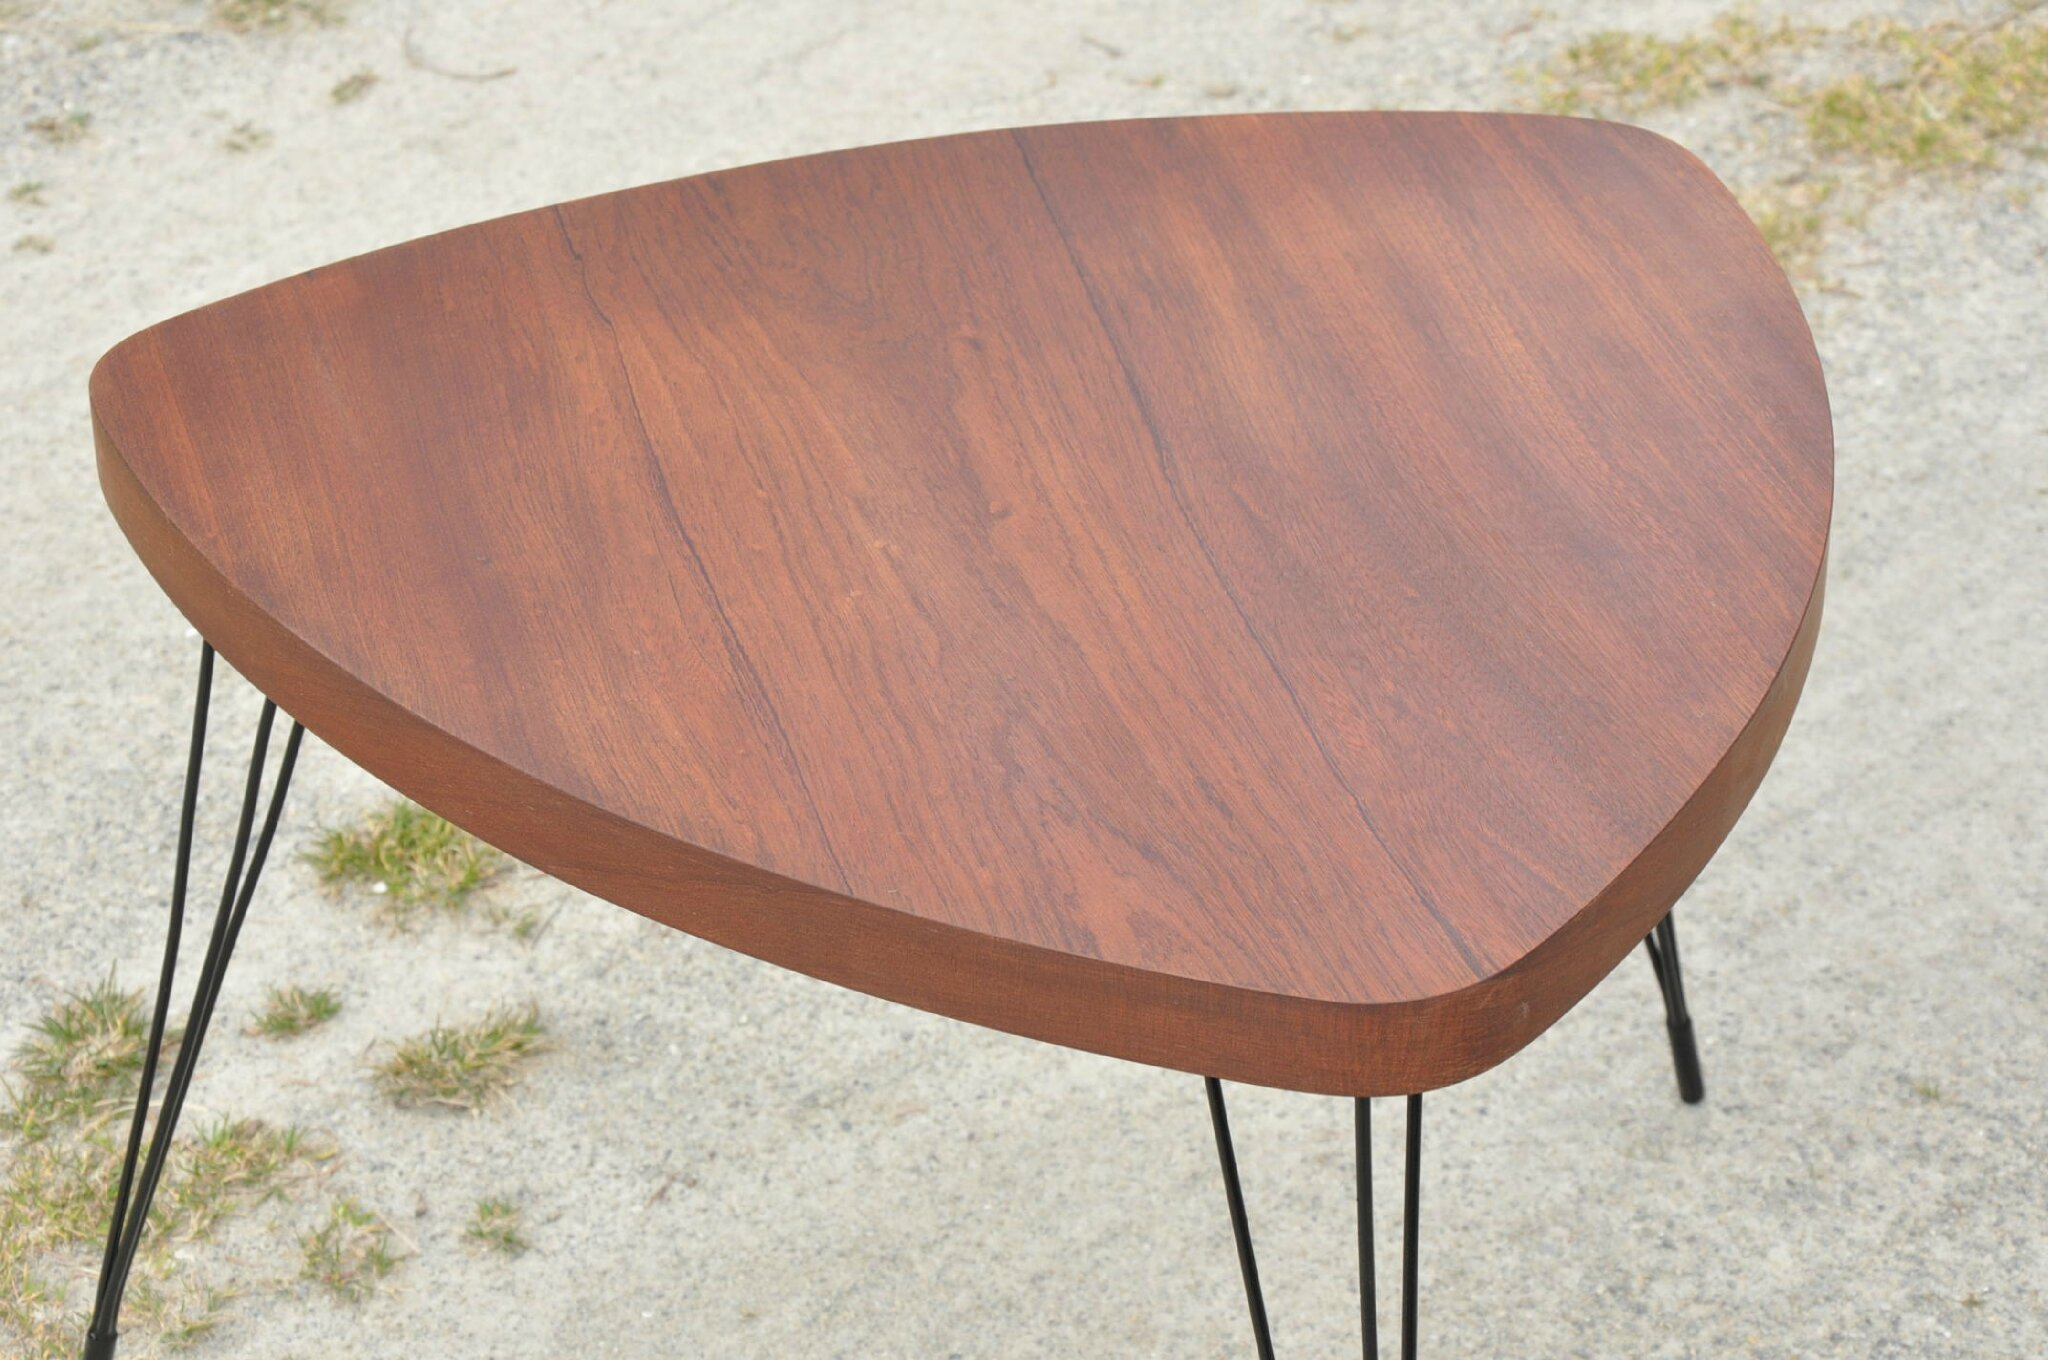 Table basse tripode pieds eiffel annees 50 - Table basse trois pieds ...